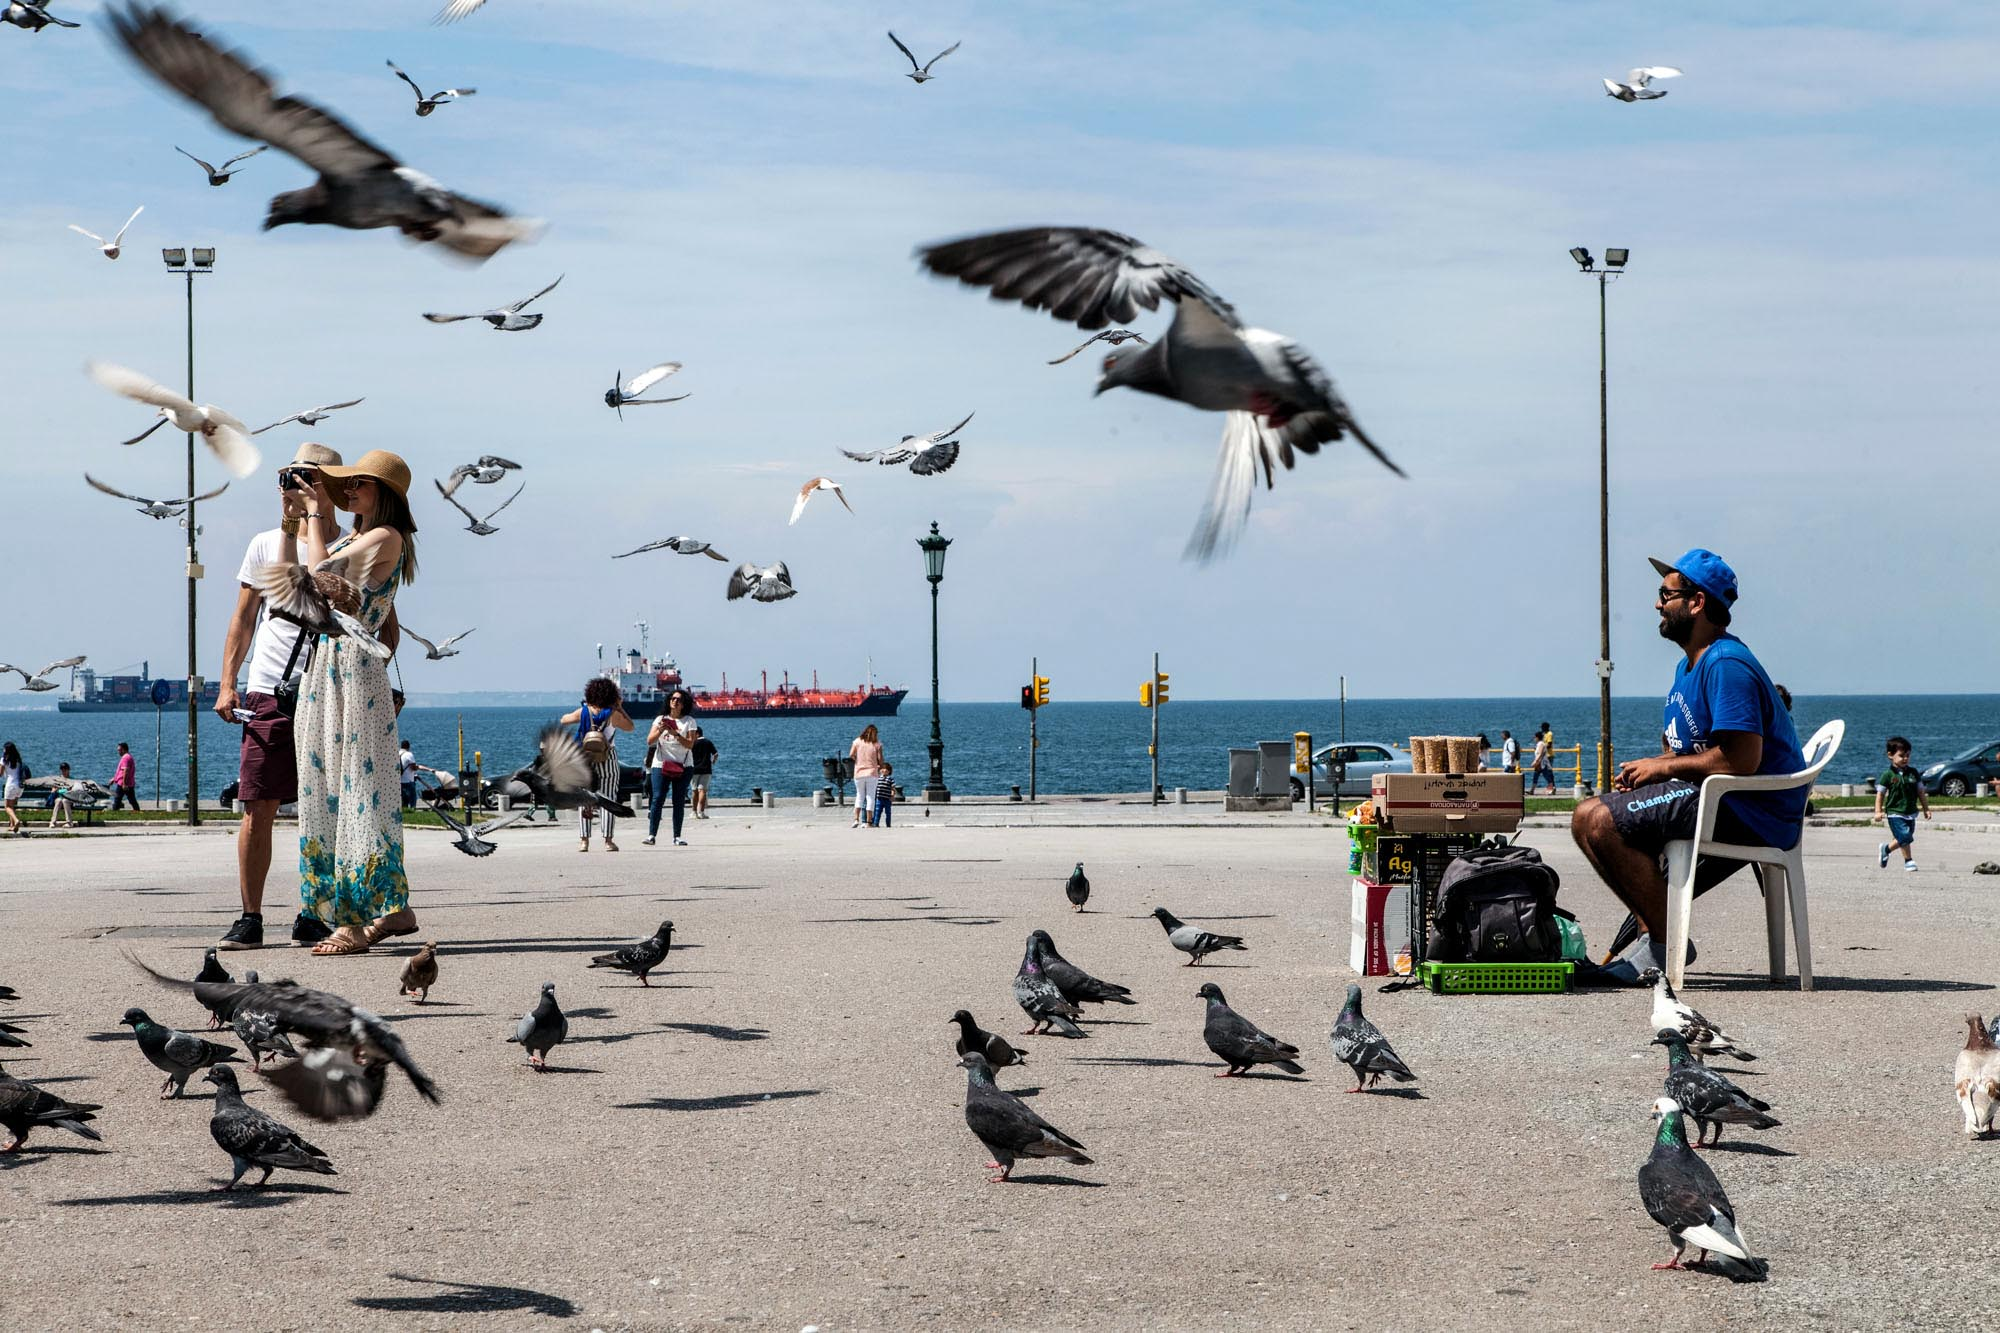 42-201806-GRECE-COMPTOIR-THS-THESSALONIQUE©AUGUSTIN_LE-GALL_HAYTHAM-PICTURES-IMG_2380.jpg